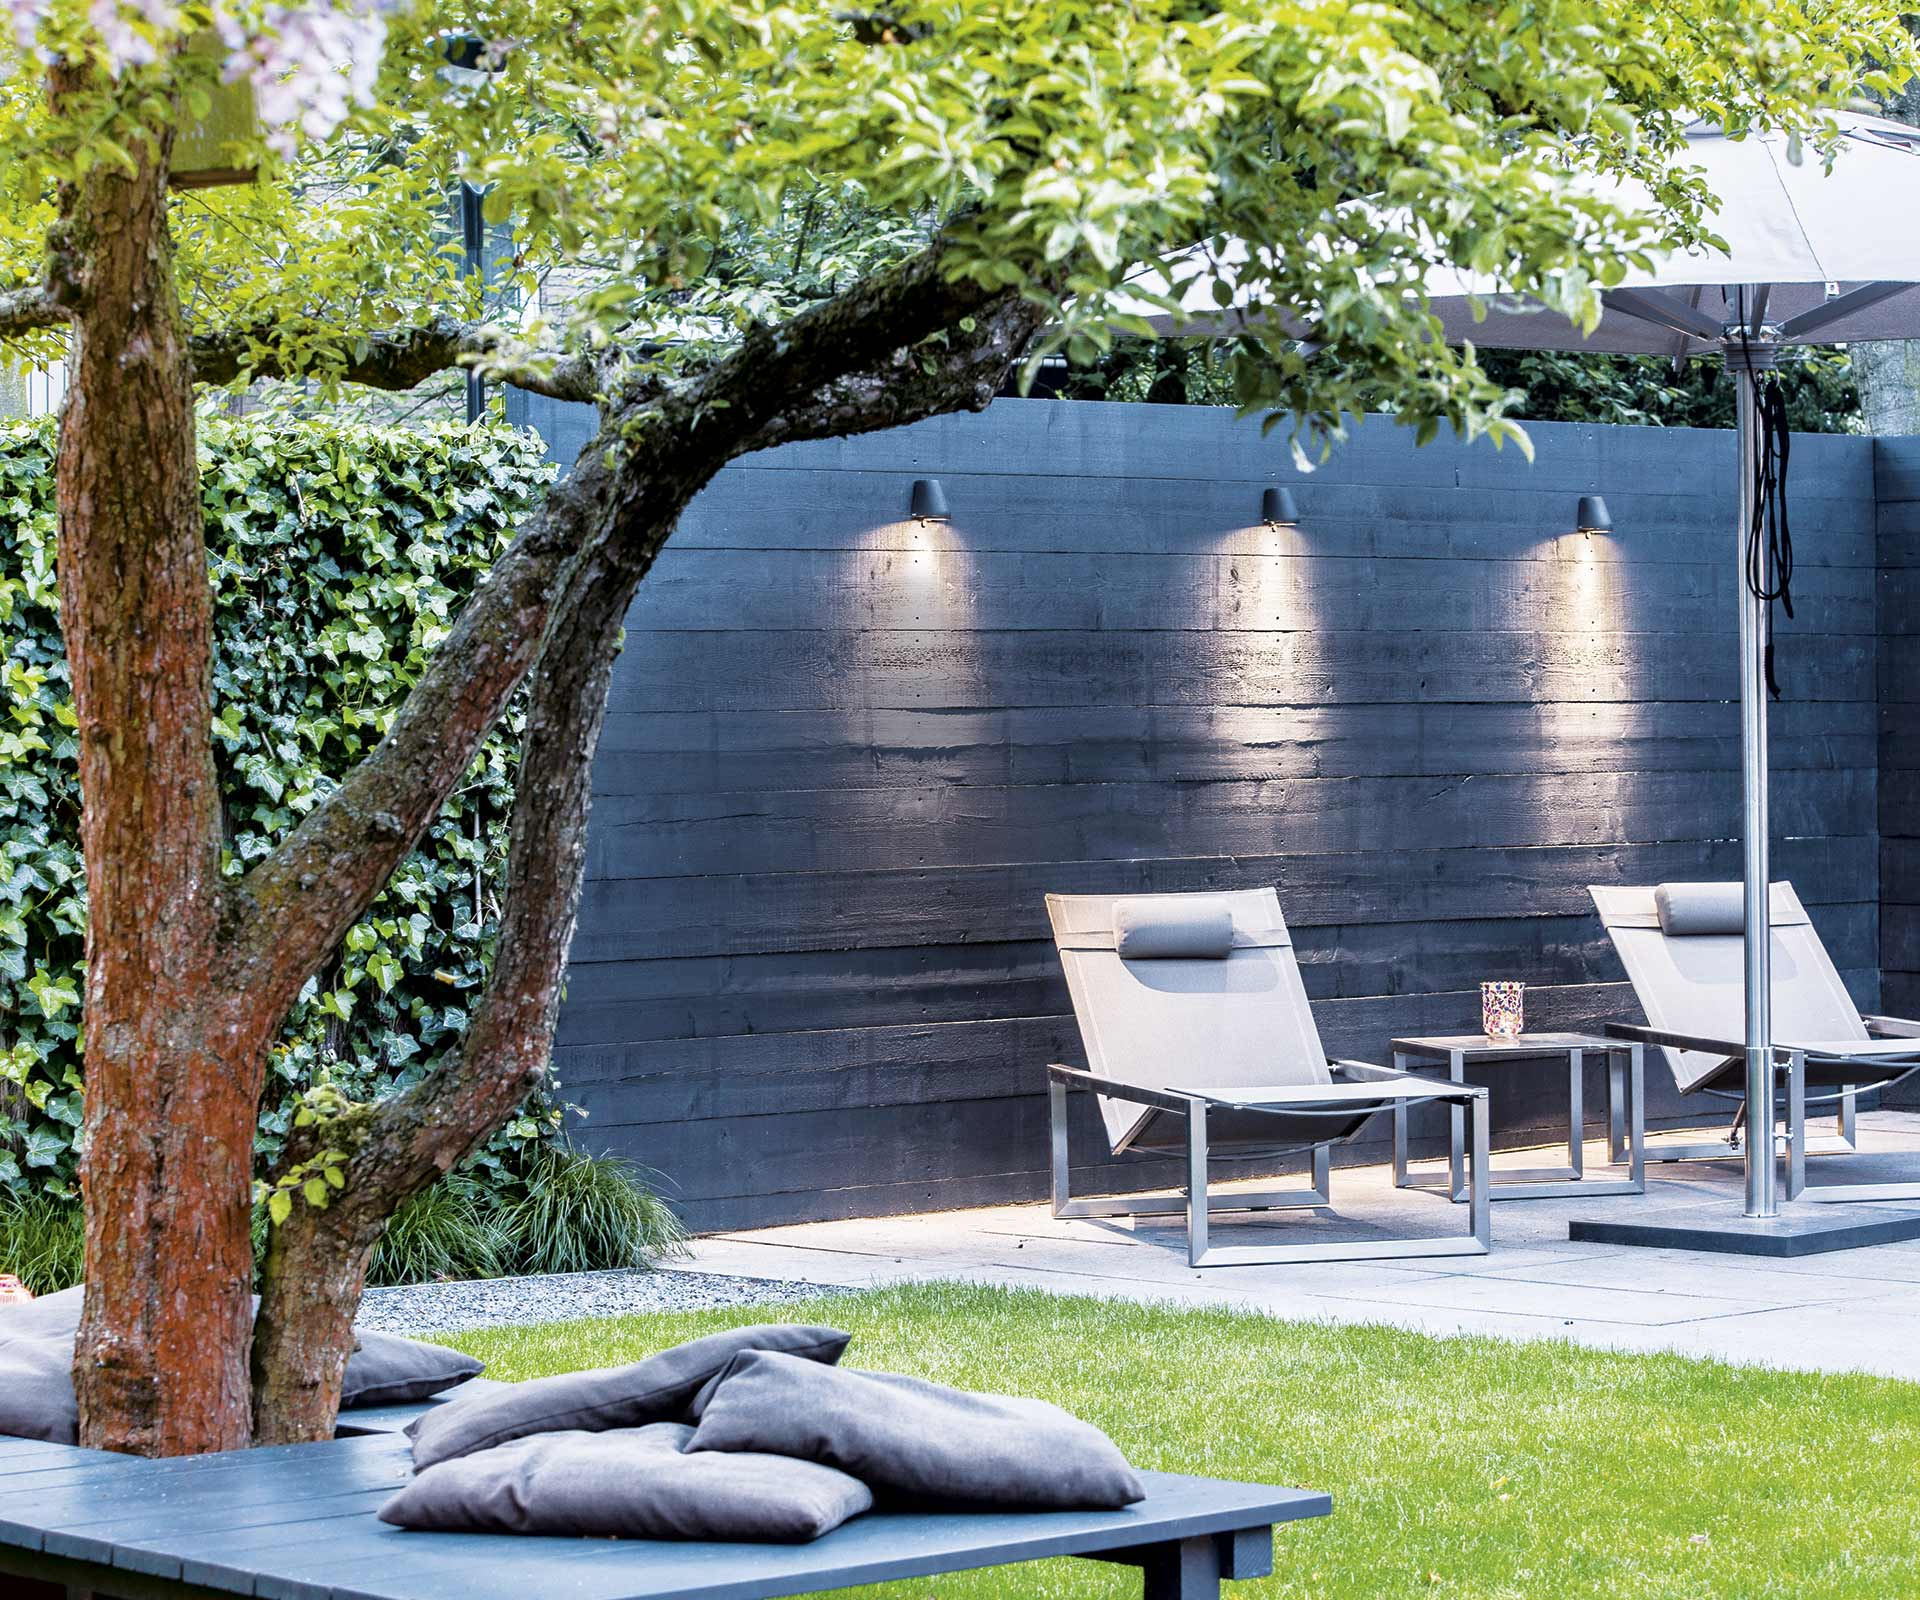 15 of the best outdoor lighting ideas for your backyard in Australia | Inside Out